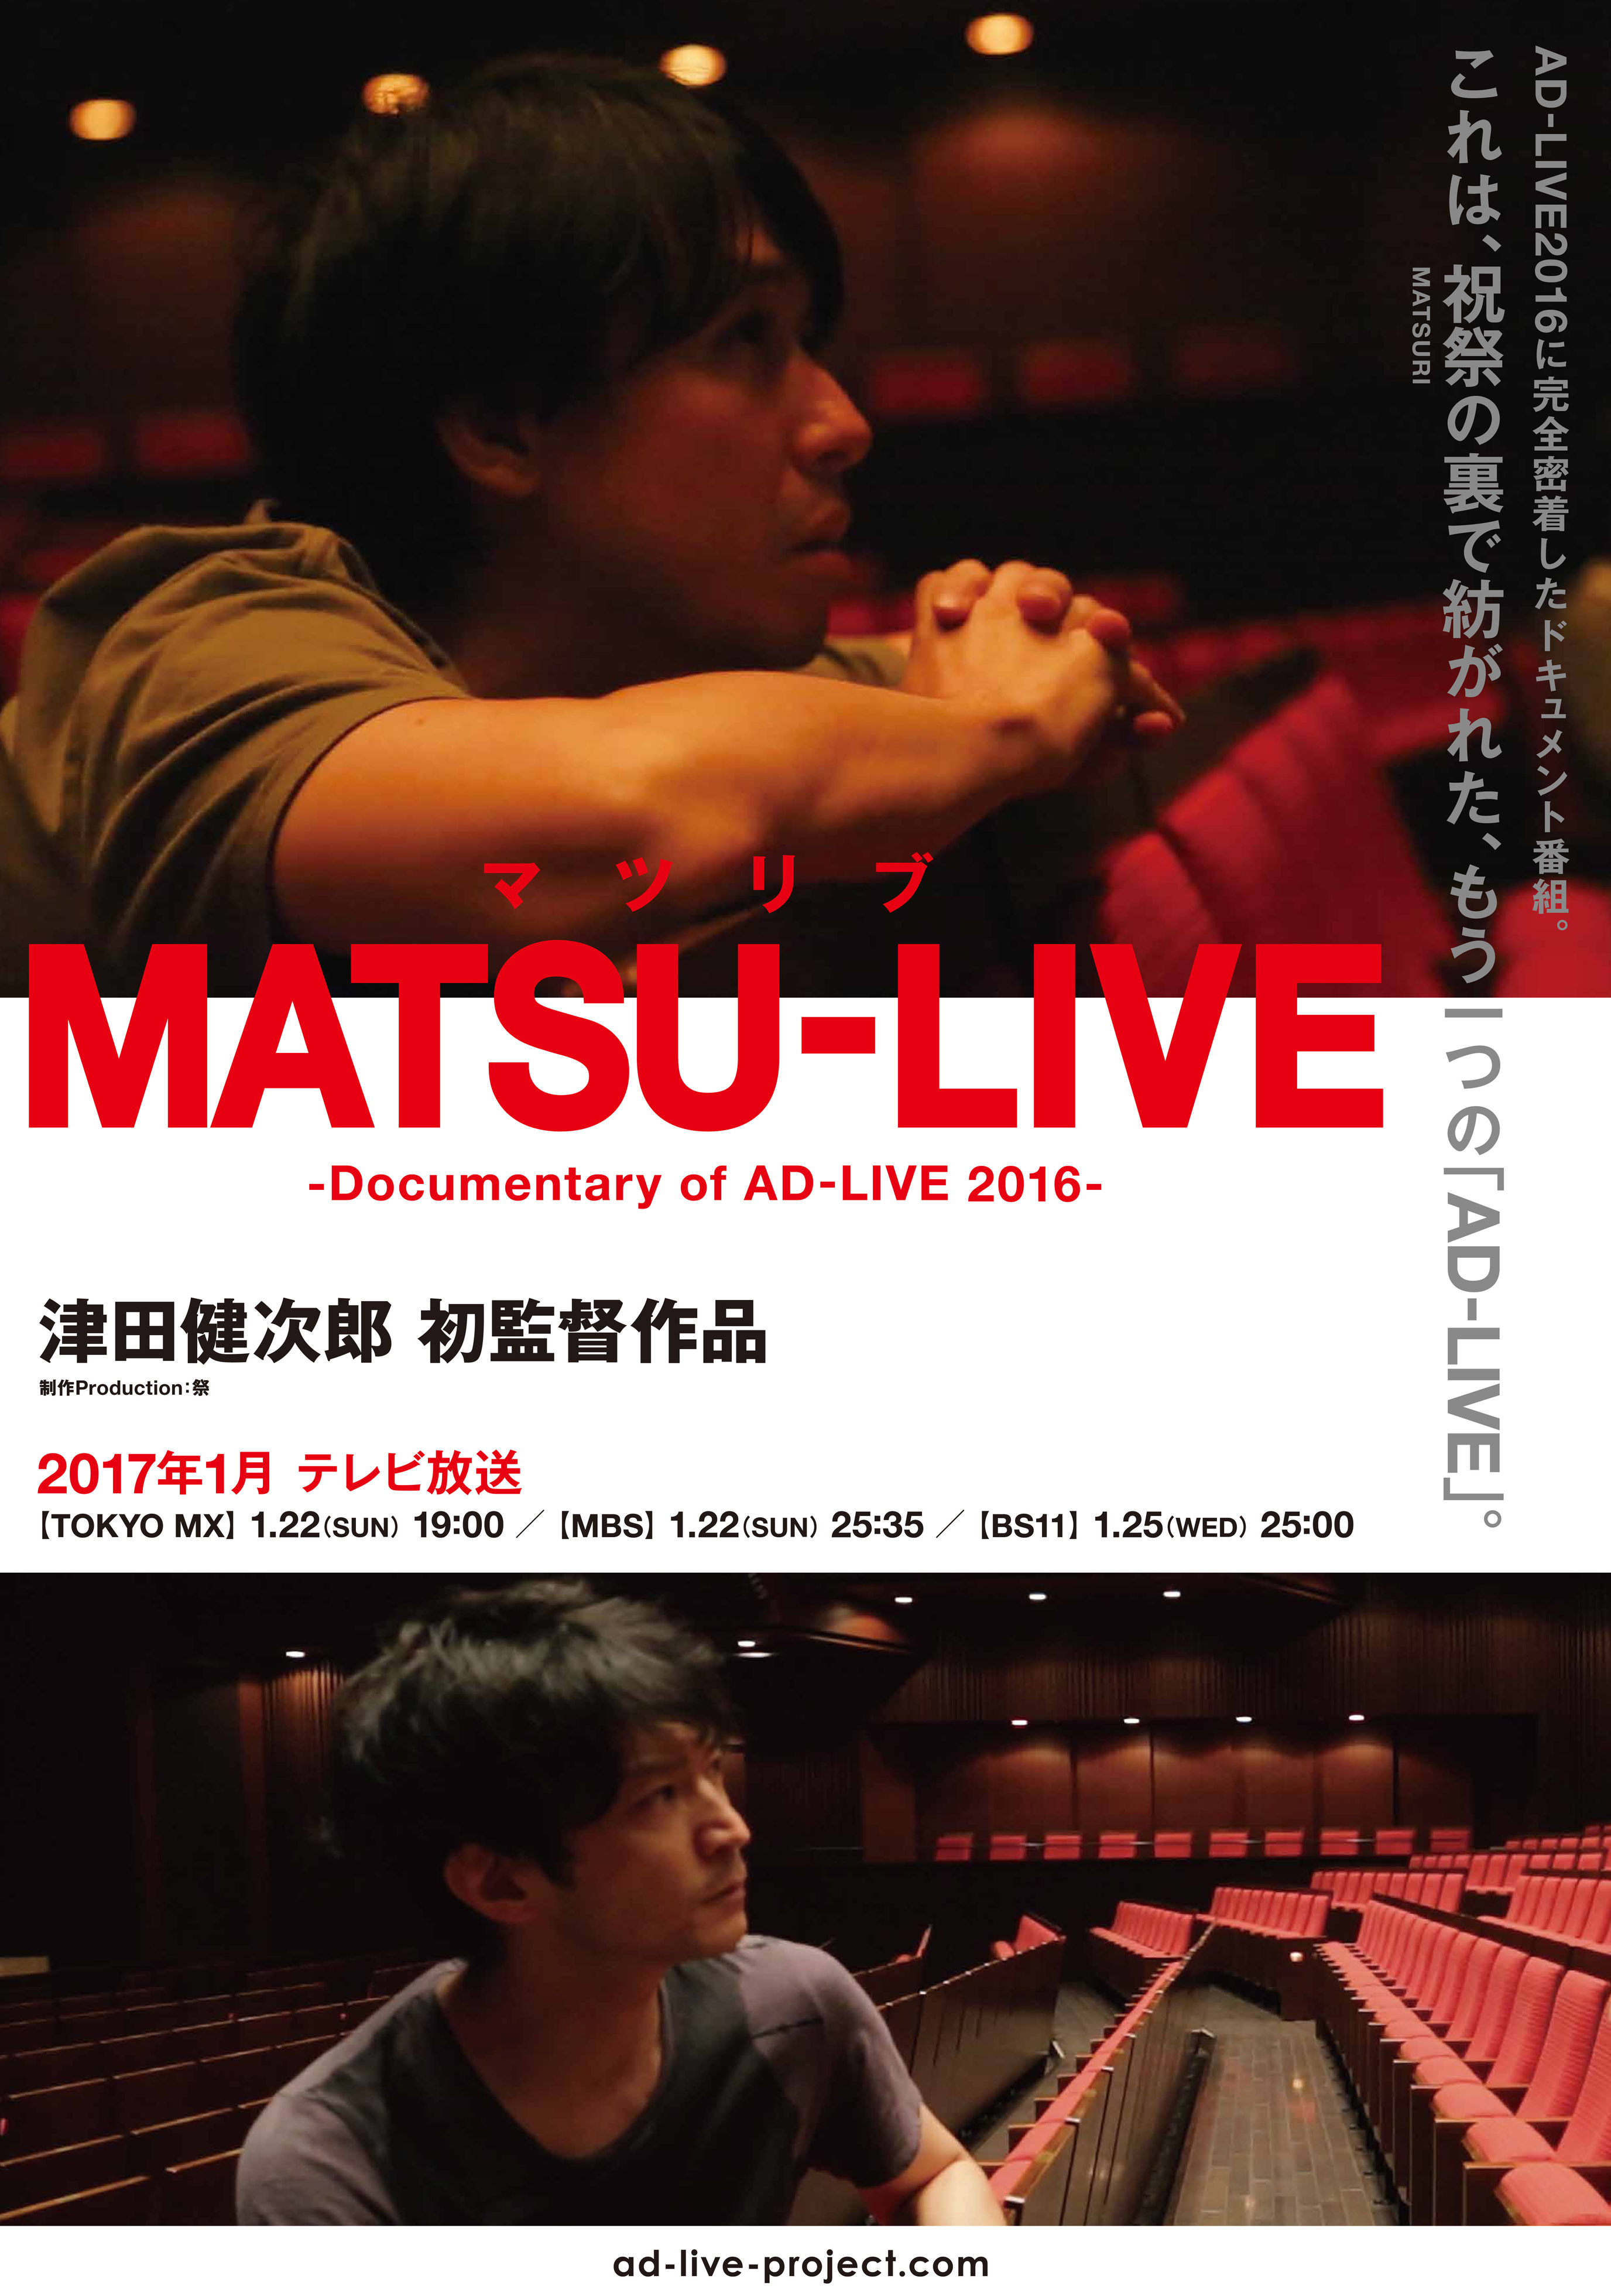 『MATSU-LIVE(マツリブ) -Documentary of AD-LIVE 2016-』